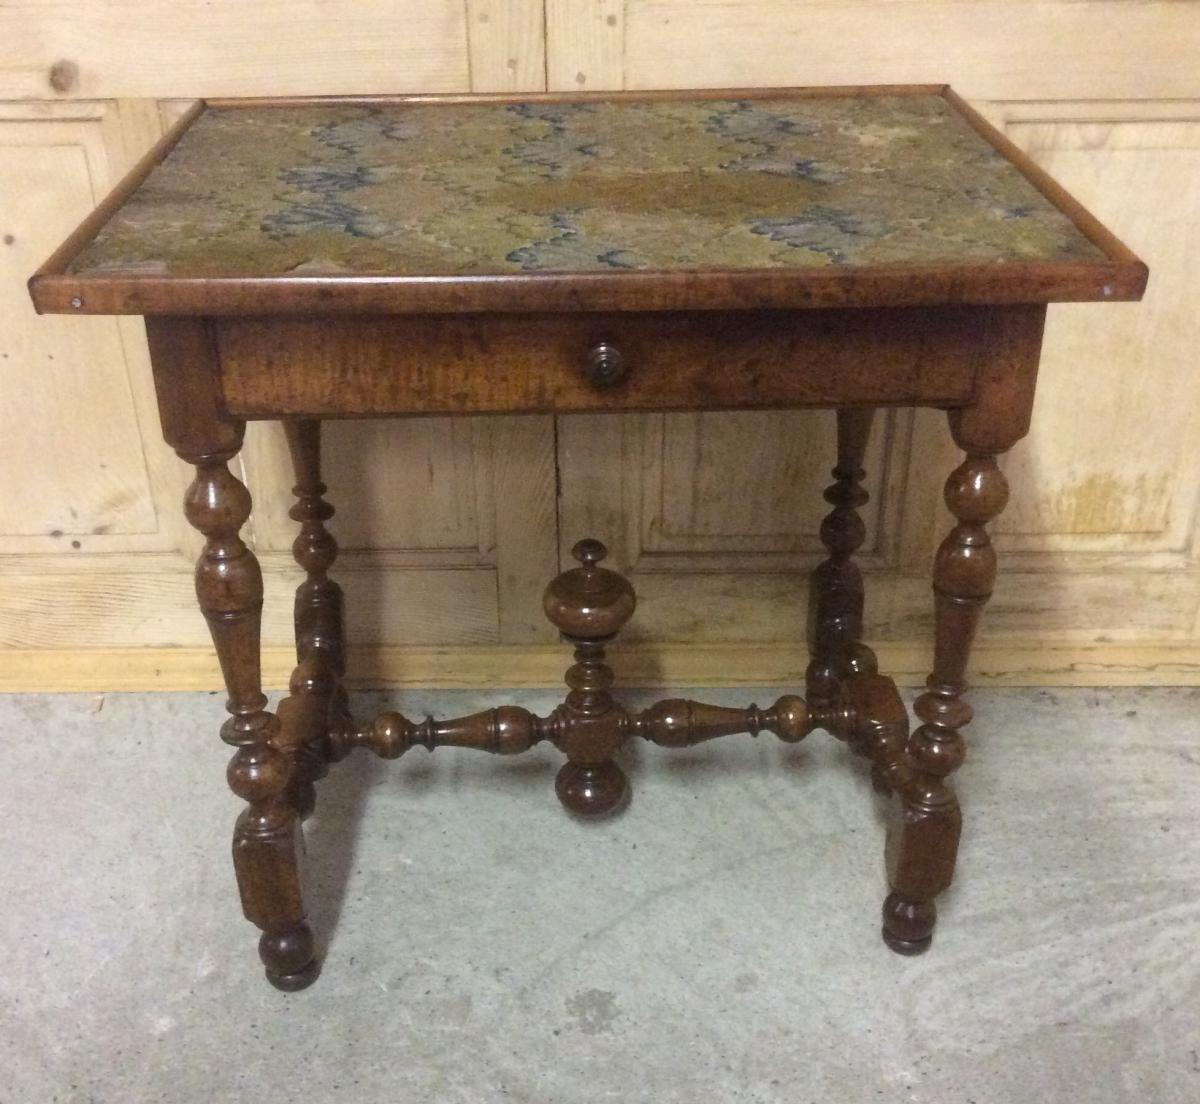 Table D'appoint A Vendre Table D 39appoint D époque Louis Xiii Tables